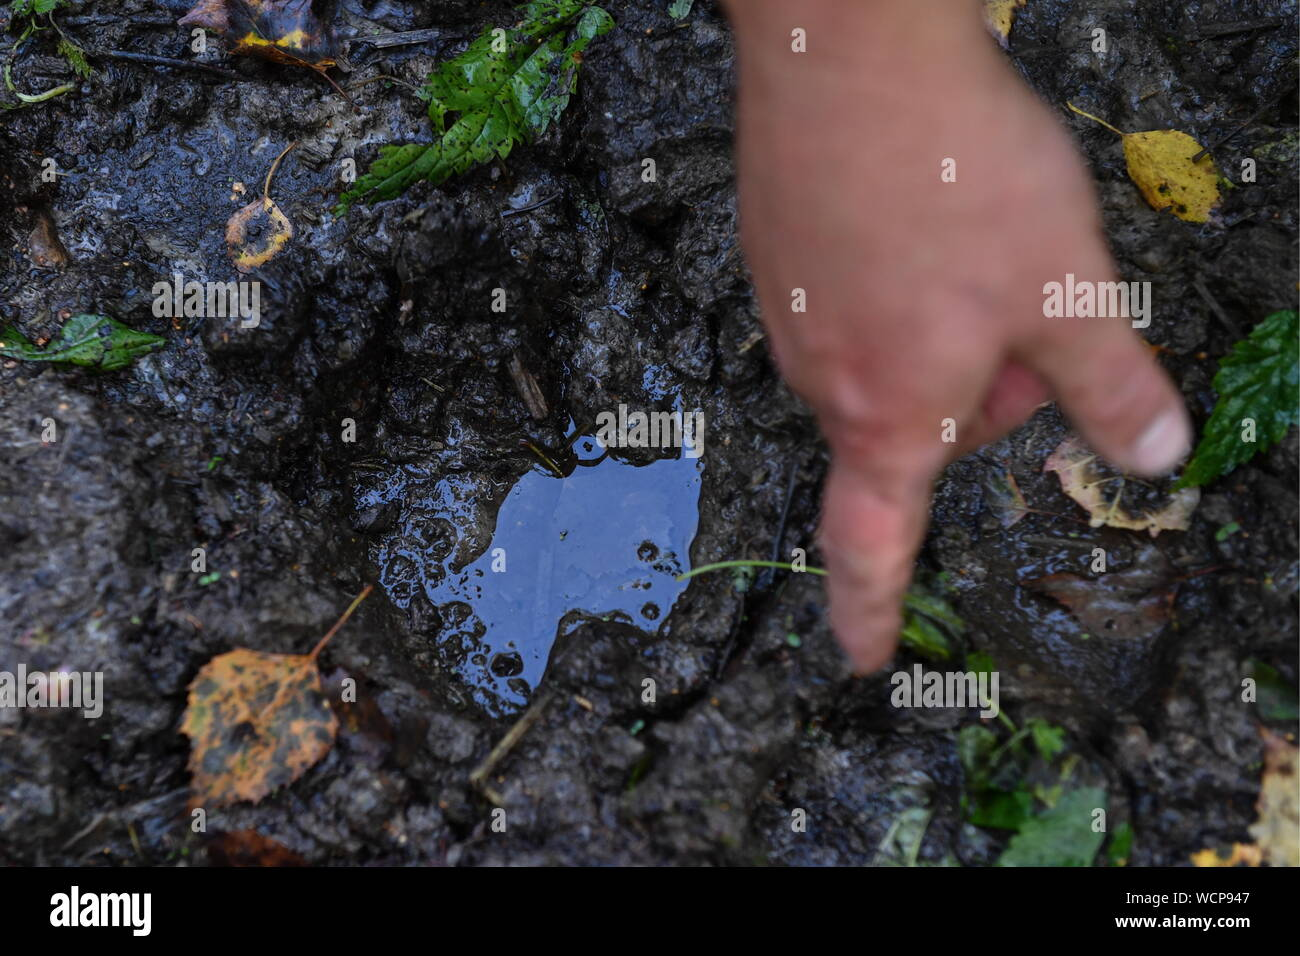 ALTAI TERRITORY, RUSSIA - AUGUST 28, 2019: A forest ranger points to an elk footprint in a protected area of taiga managed by KBU Altaipriroda in Togul District of Russia's Altai Territory, which is to become part of a protected area under the working name of Togul National Park; according to the Russian government's project Ekologia (Ecology), the proposed national park is to be established by 2024 and to include parts of Zarinsk District, Togul District, and Yeltsovka District of the Altai Territory, with a total area of over 160 hectares. Kirill Kukhmar/TASS Stock Photo